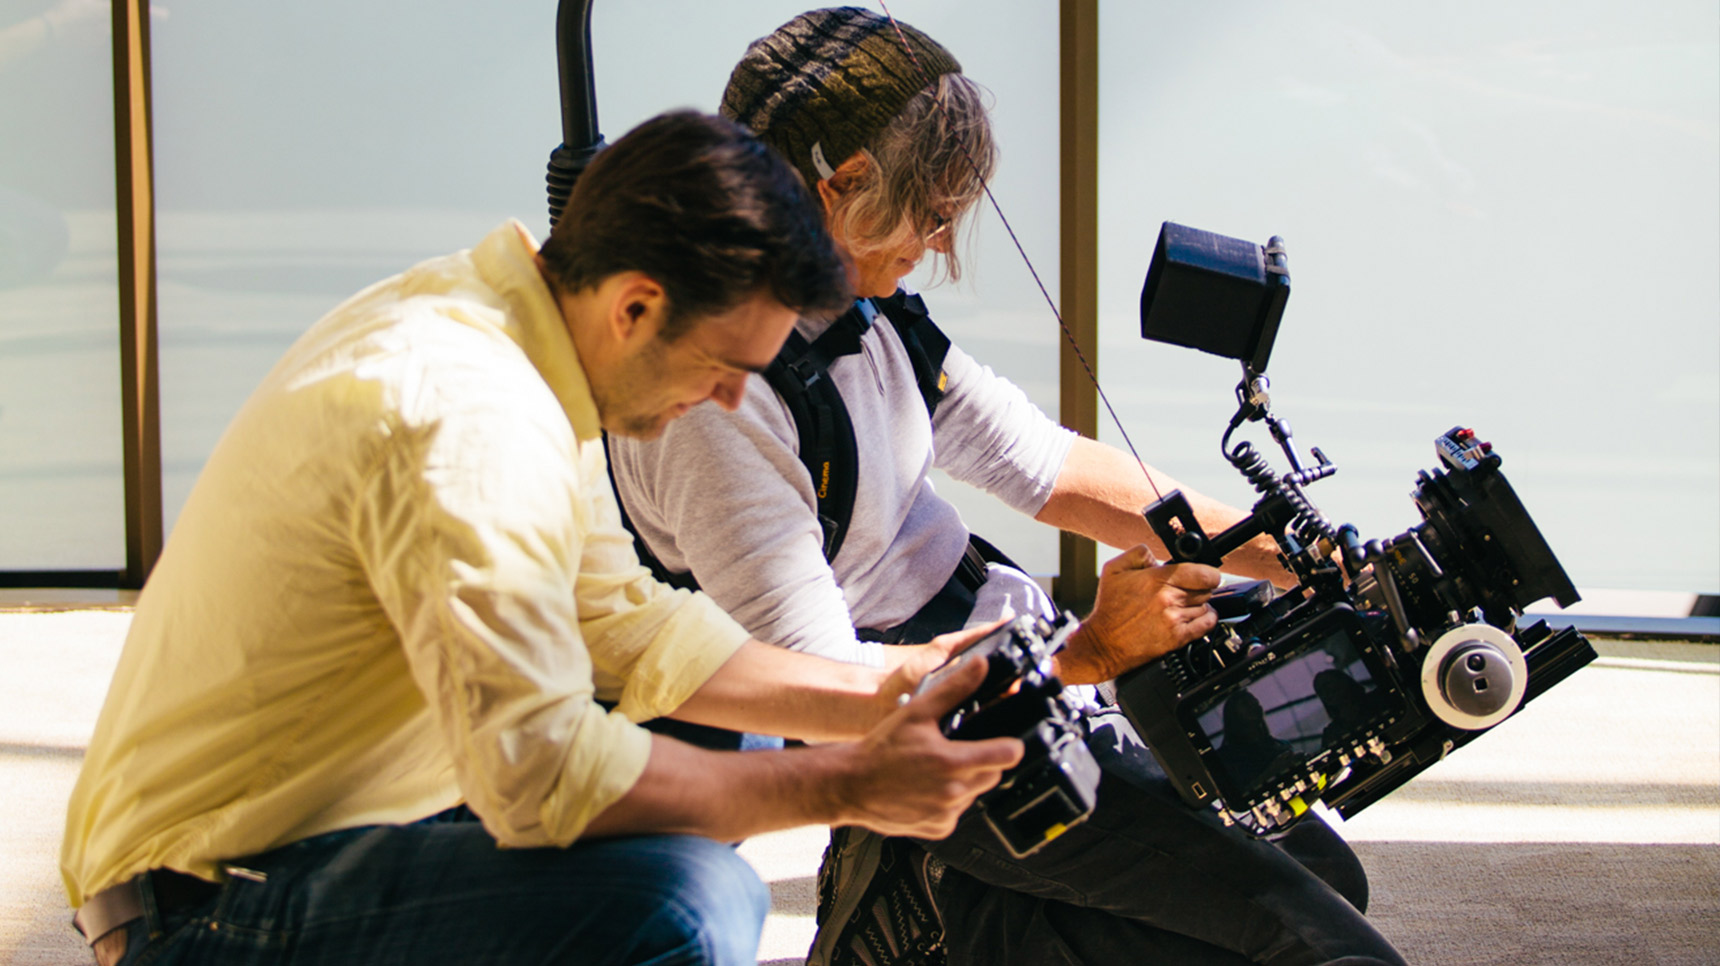 stonecastle director and cinematographer shoot a scene at the hospital